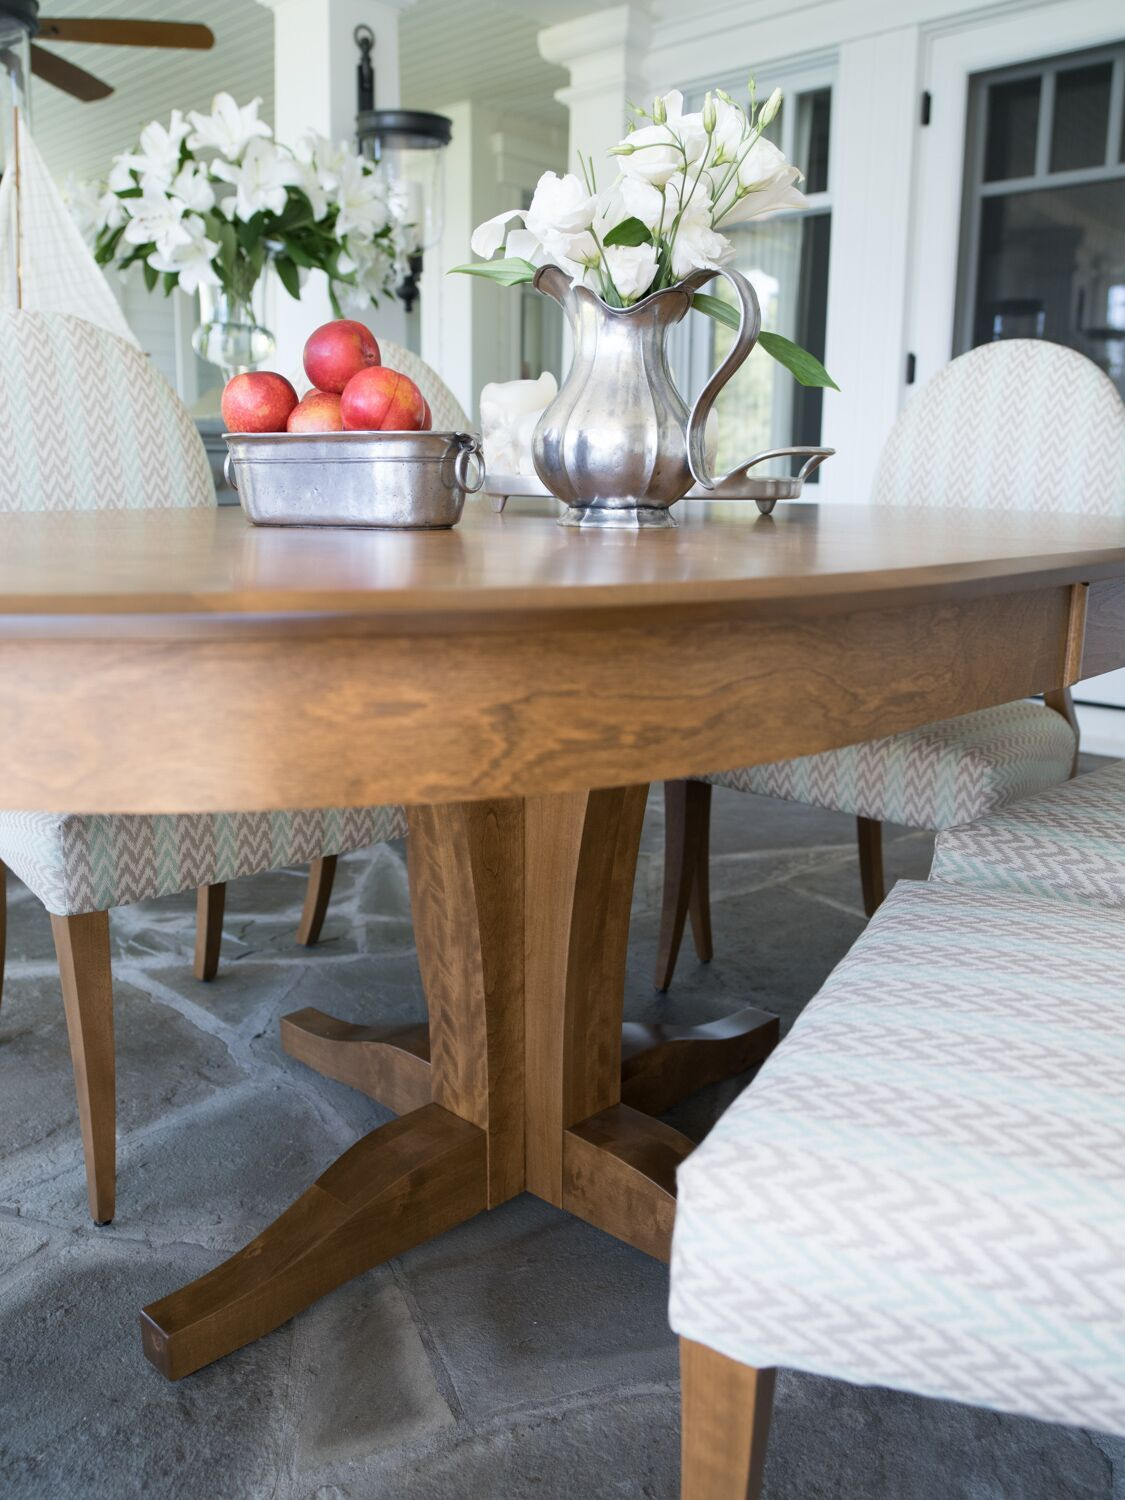 Canadel Offers High Quality Dining Furniture Ranging From Classic